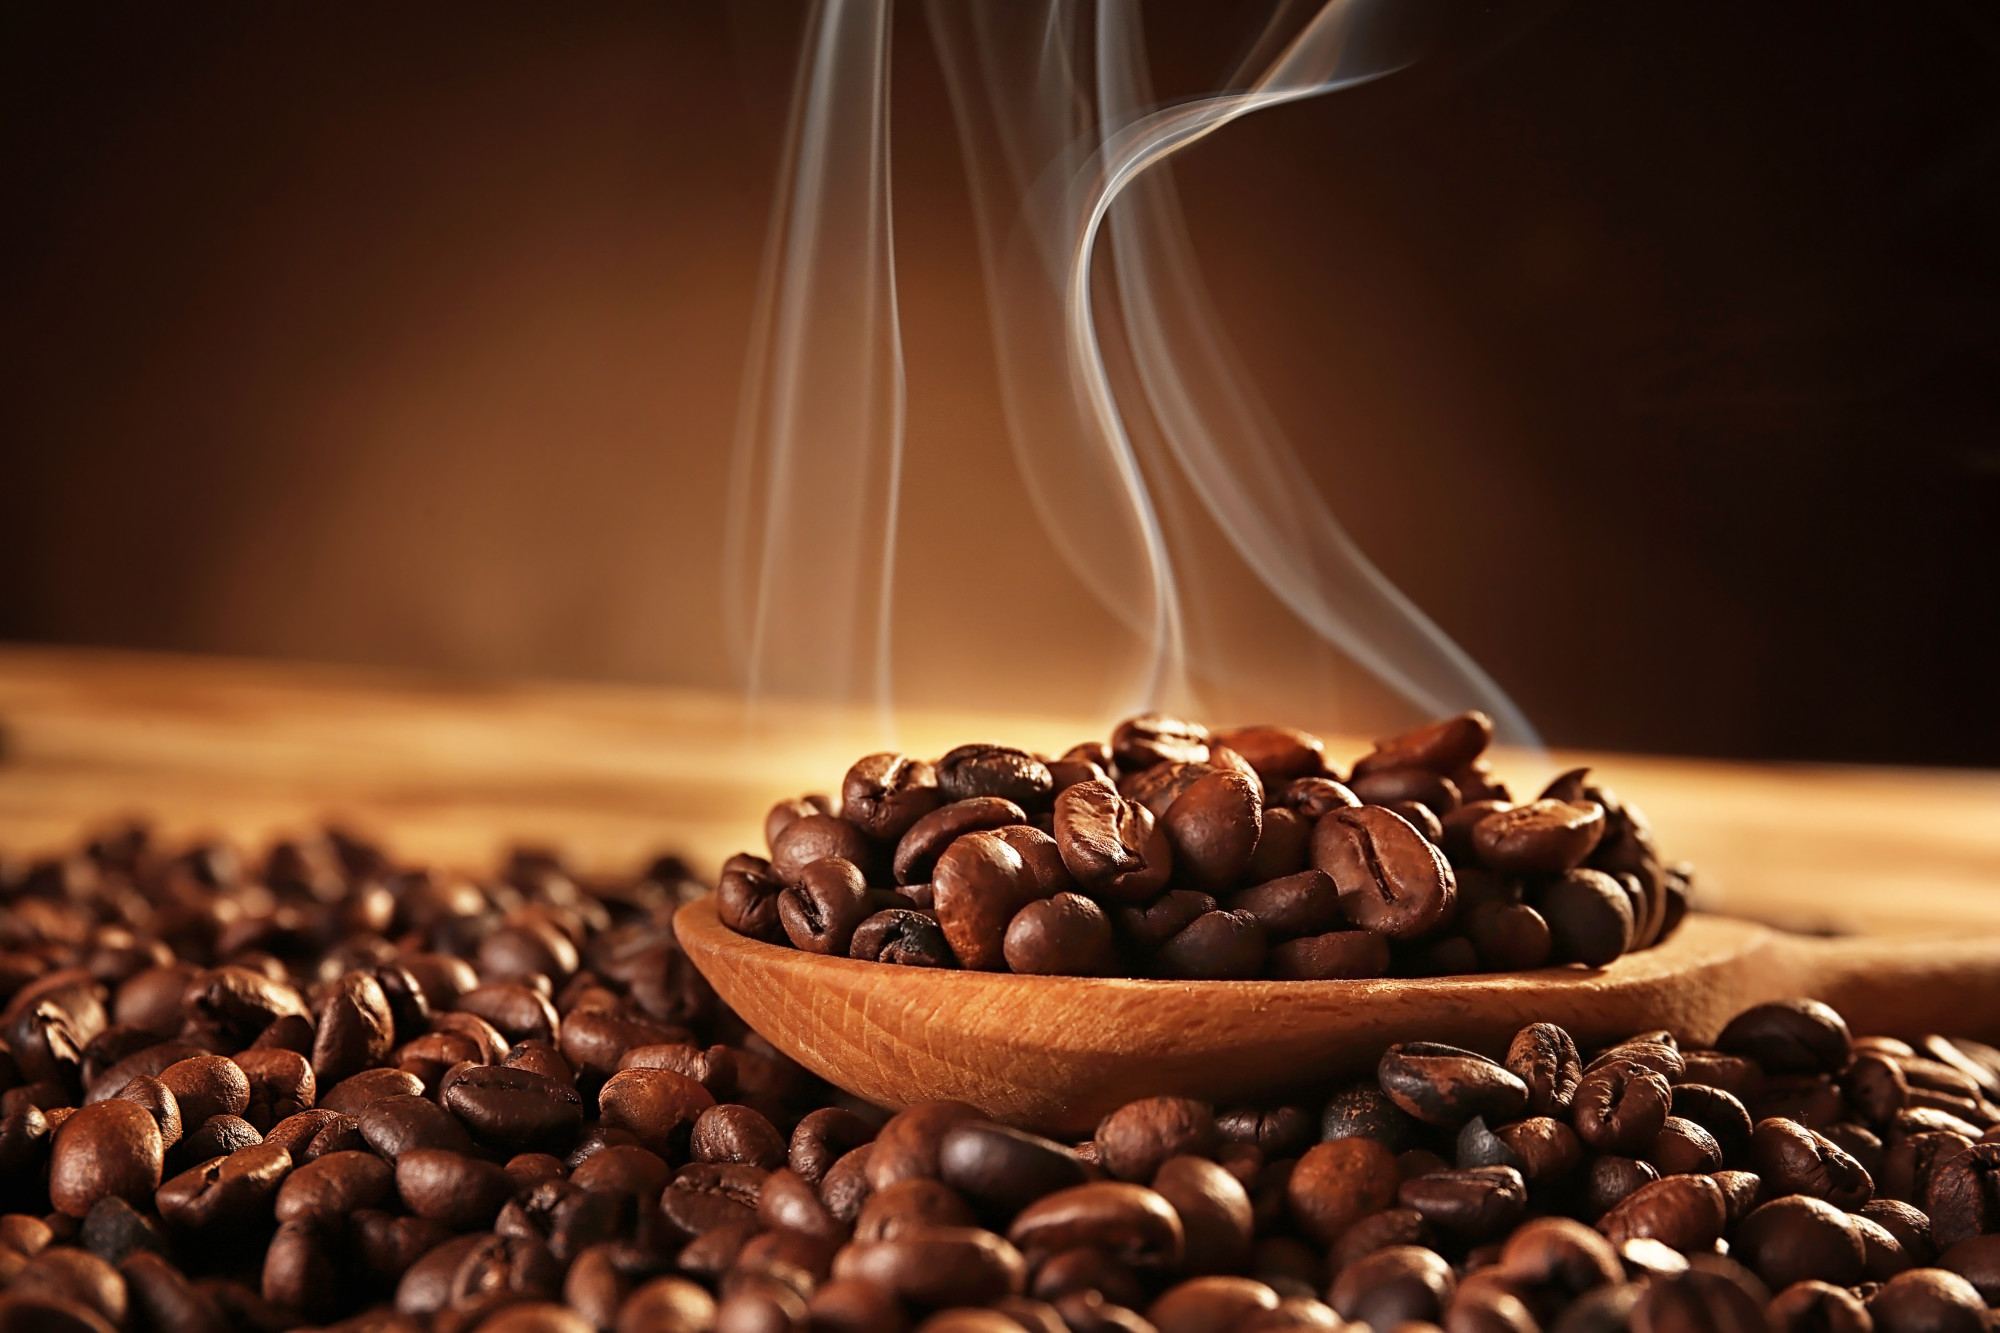 7 Different Types of Coffee Beans From Different Countries - The ...